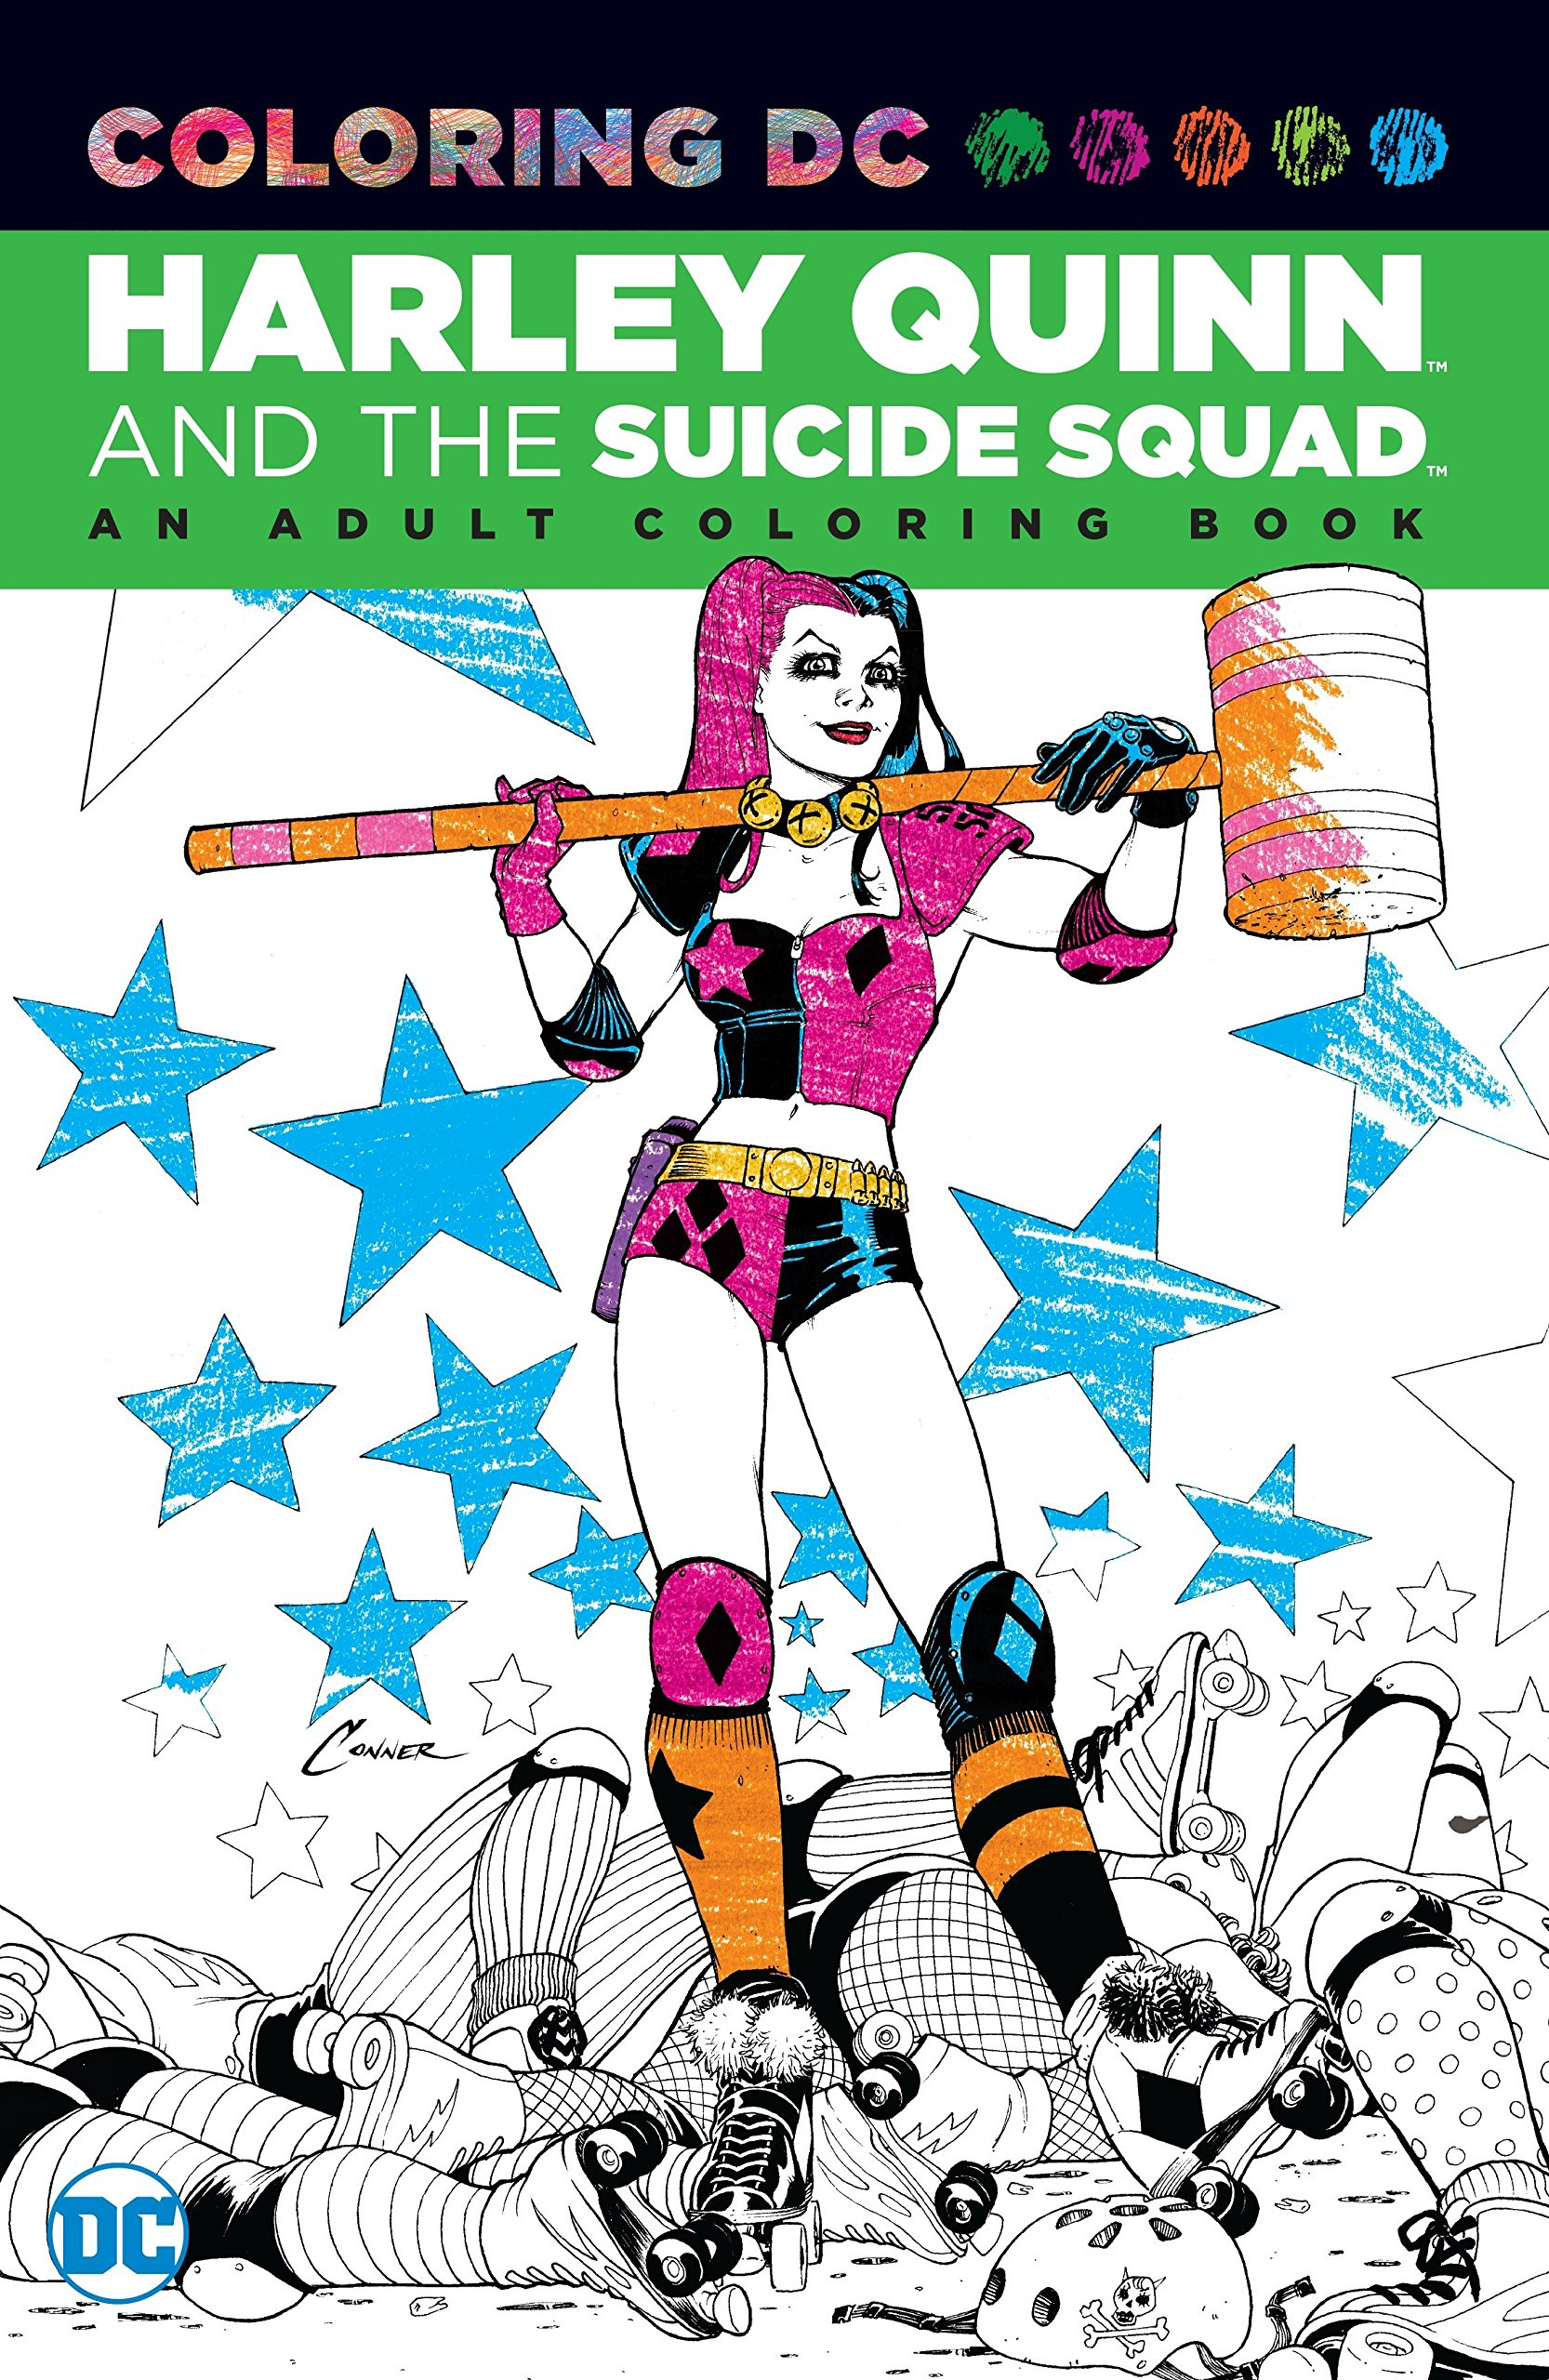 - Amazon.com: Harley Quinn & The Suicide Squad: An Adult Coloring